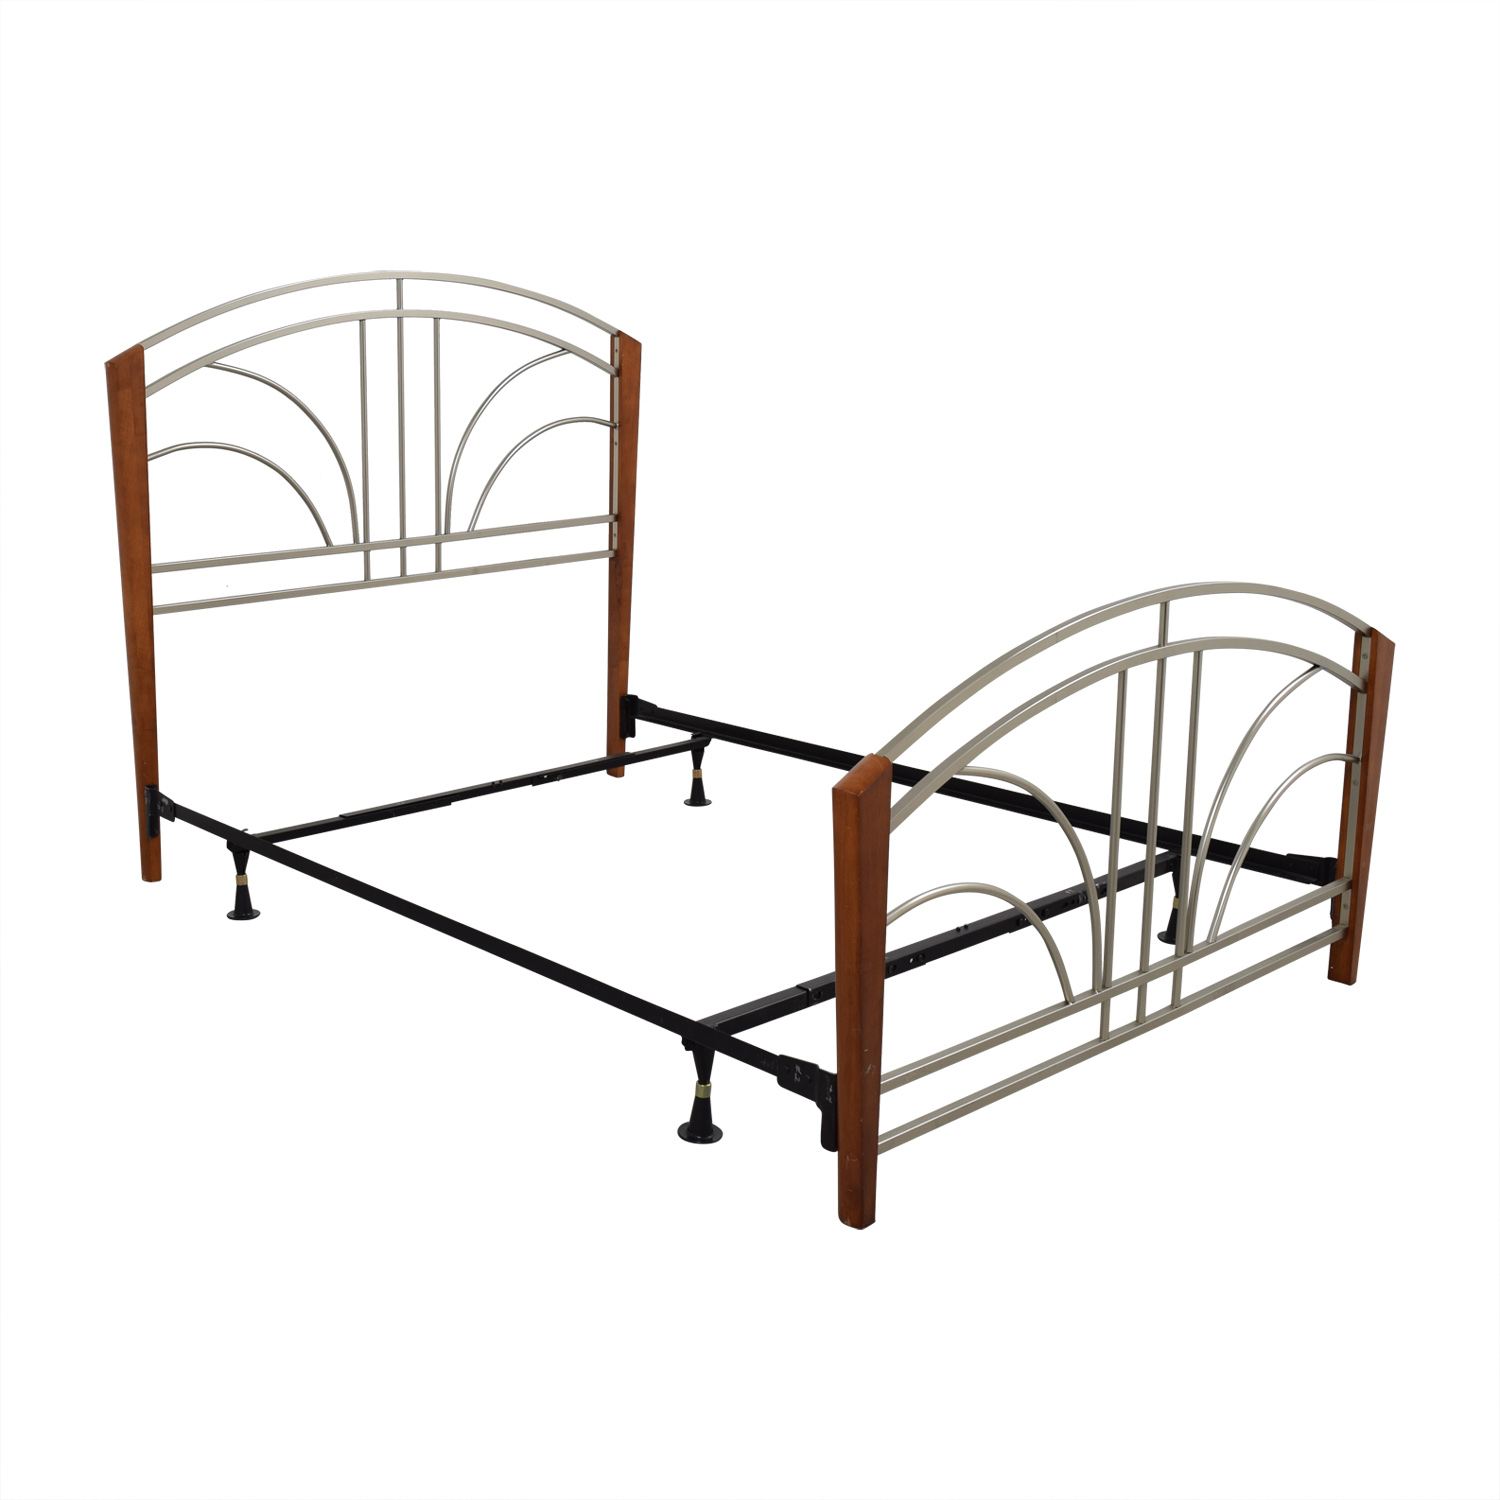 90 off wood post and metal frame queen bed frame beds for Second hand bunk beds